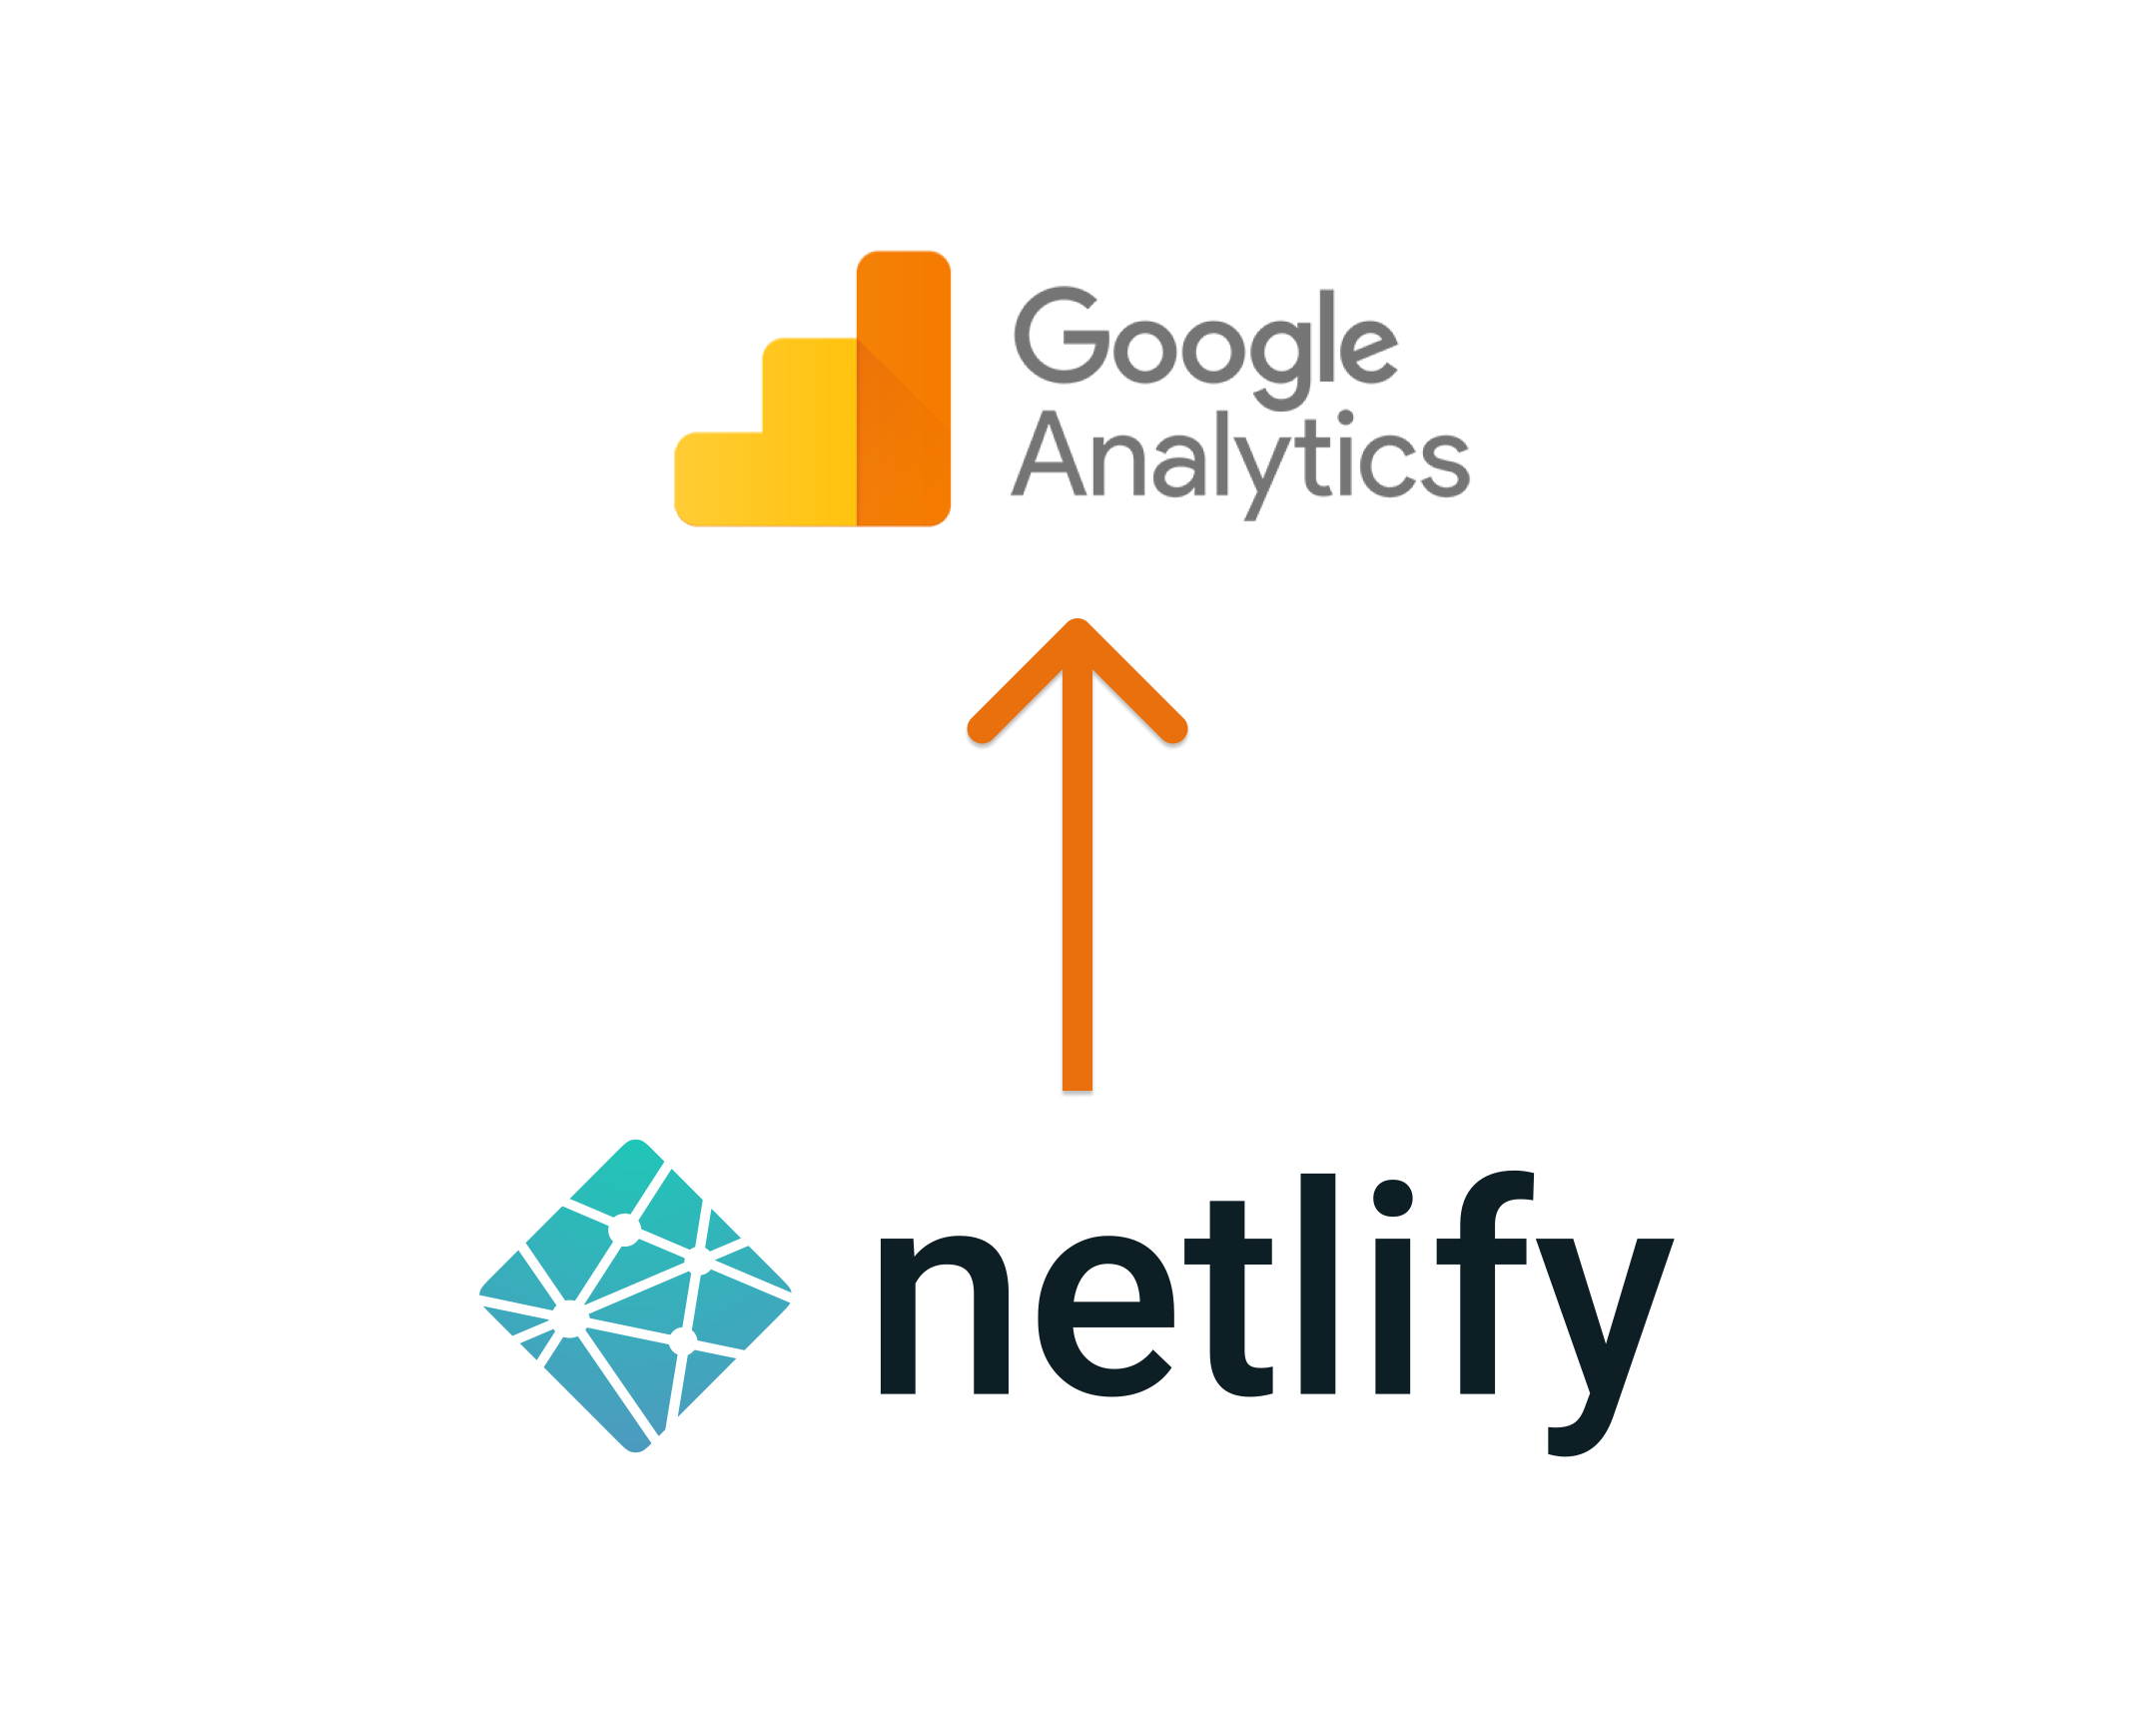 /how-to-get-page-views-from-google-analytics-via-a-netlify-serverless-function-99163wzg feature image